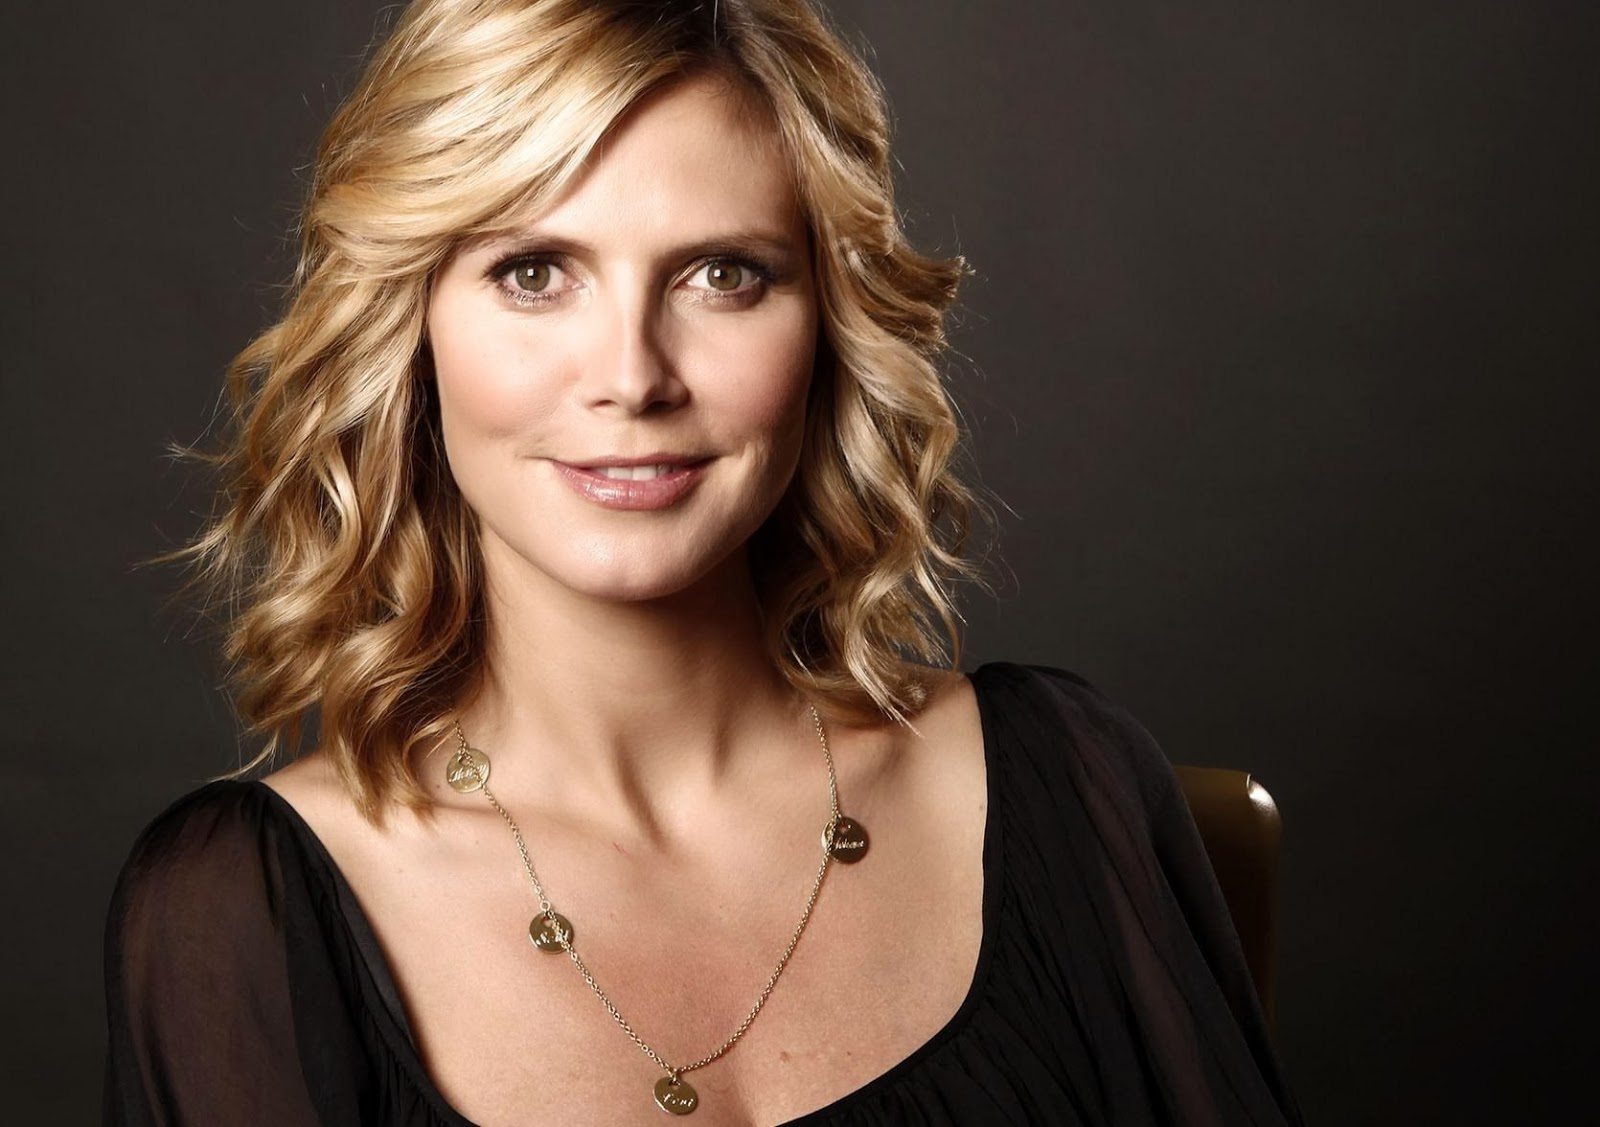 Heidi Klum: Heidi Klum HD Wallpapers, Heidi Klum HD Wallpapers New